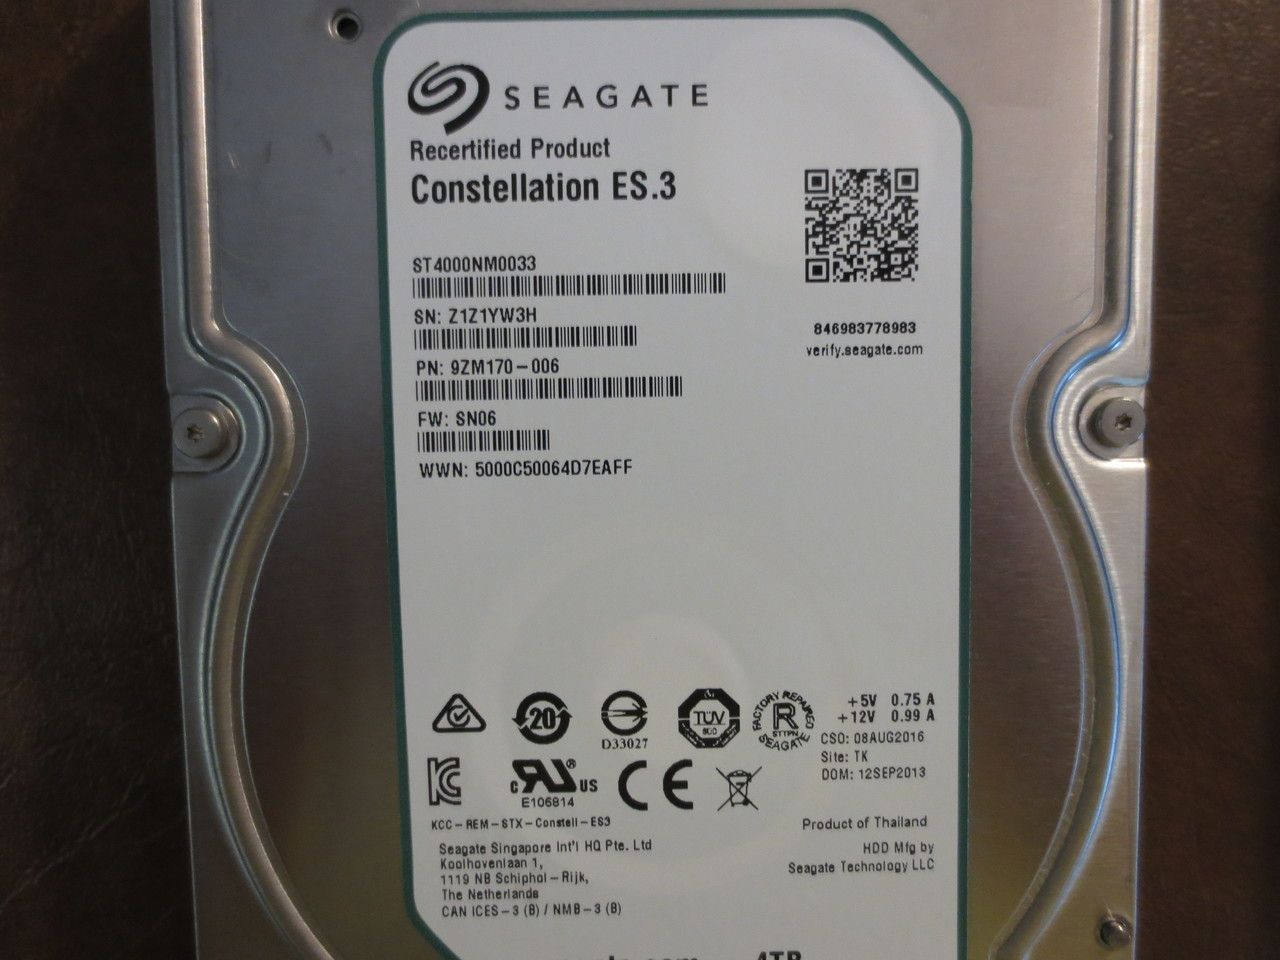 """*Factory Direct* Seagate ST4000NM0033 9ZM170-006 4.0TB 3.5/"""" Sata HDD *0 hours*"""